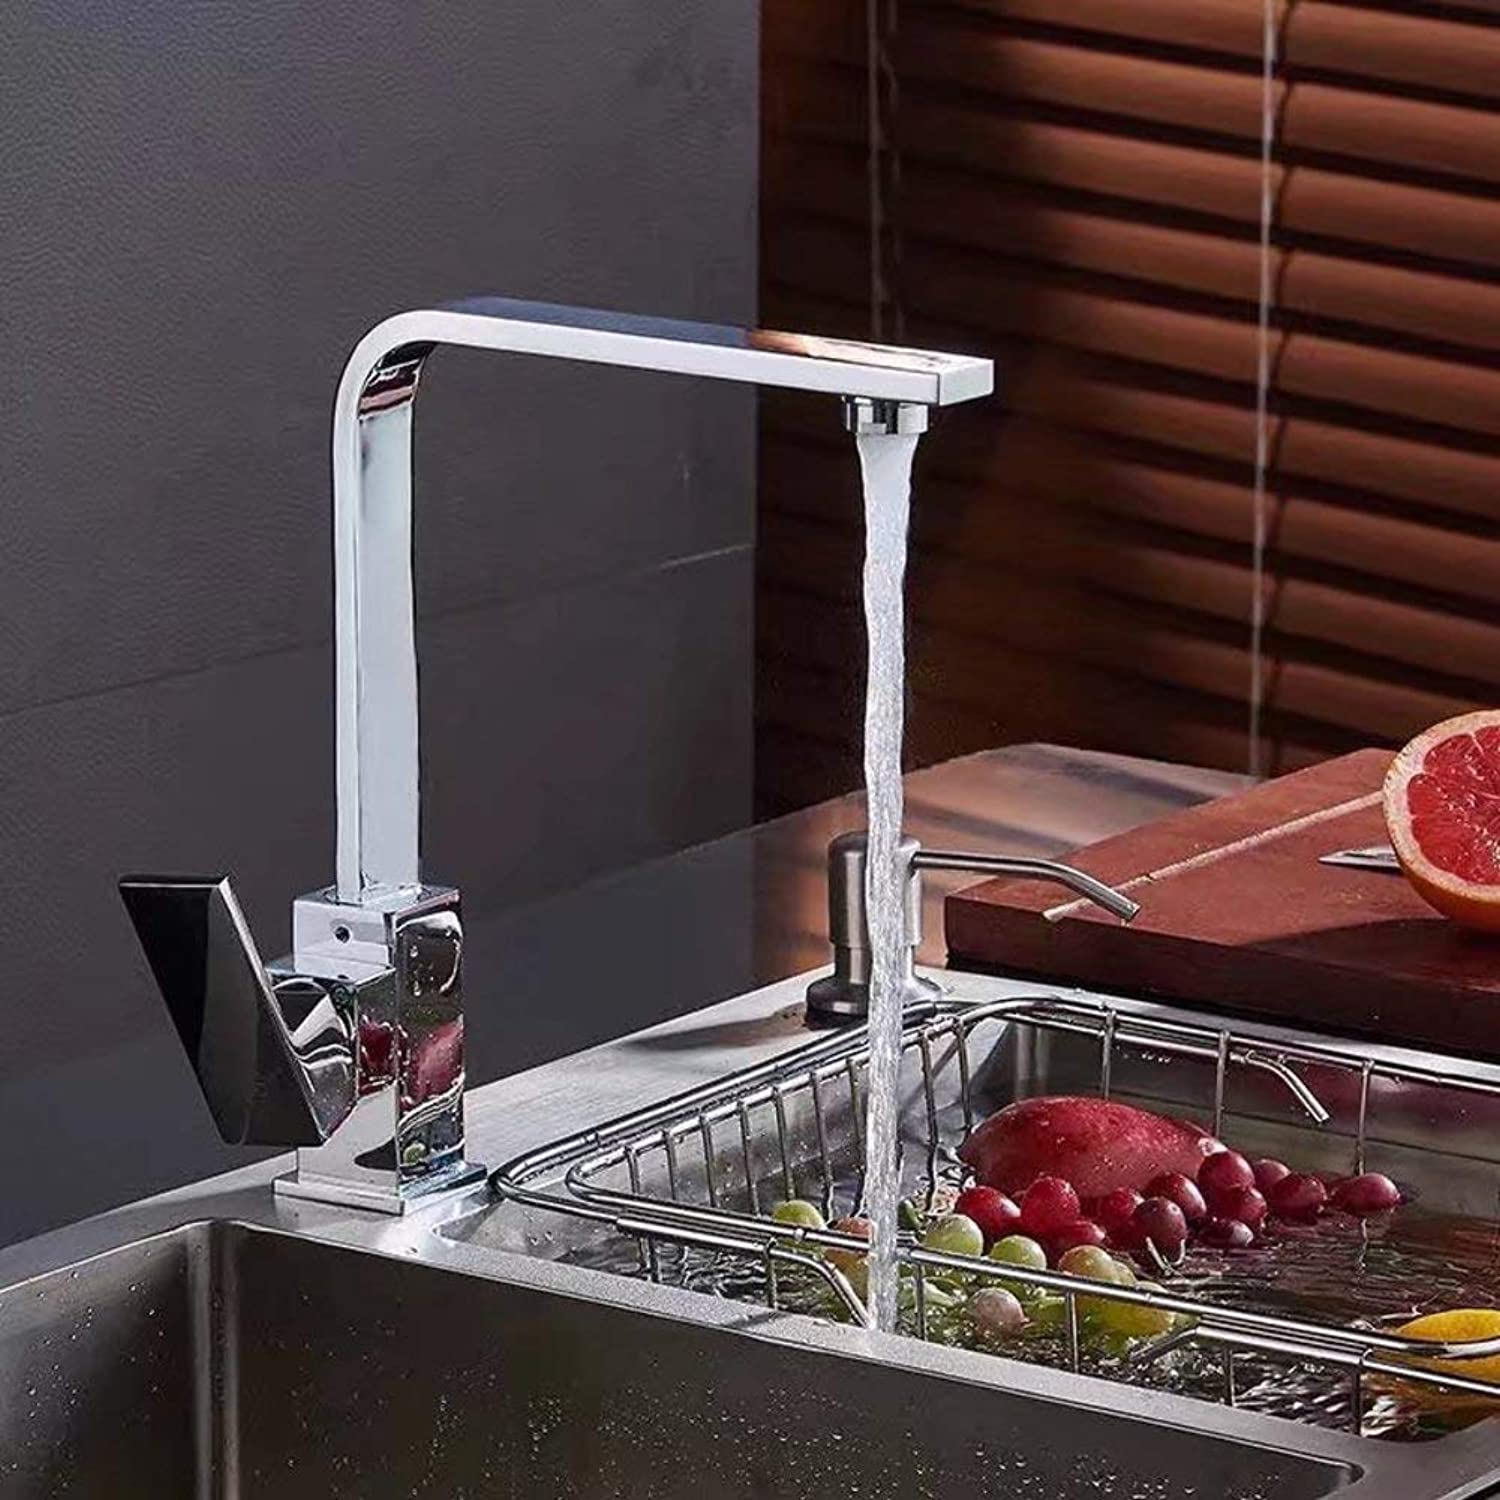 J&LILI Kitchen Faucet, Copper Faucet, Hot and Cold Mixed Green Faucet, 360 Degree redating Faucet